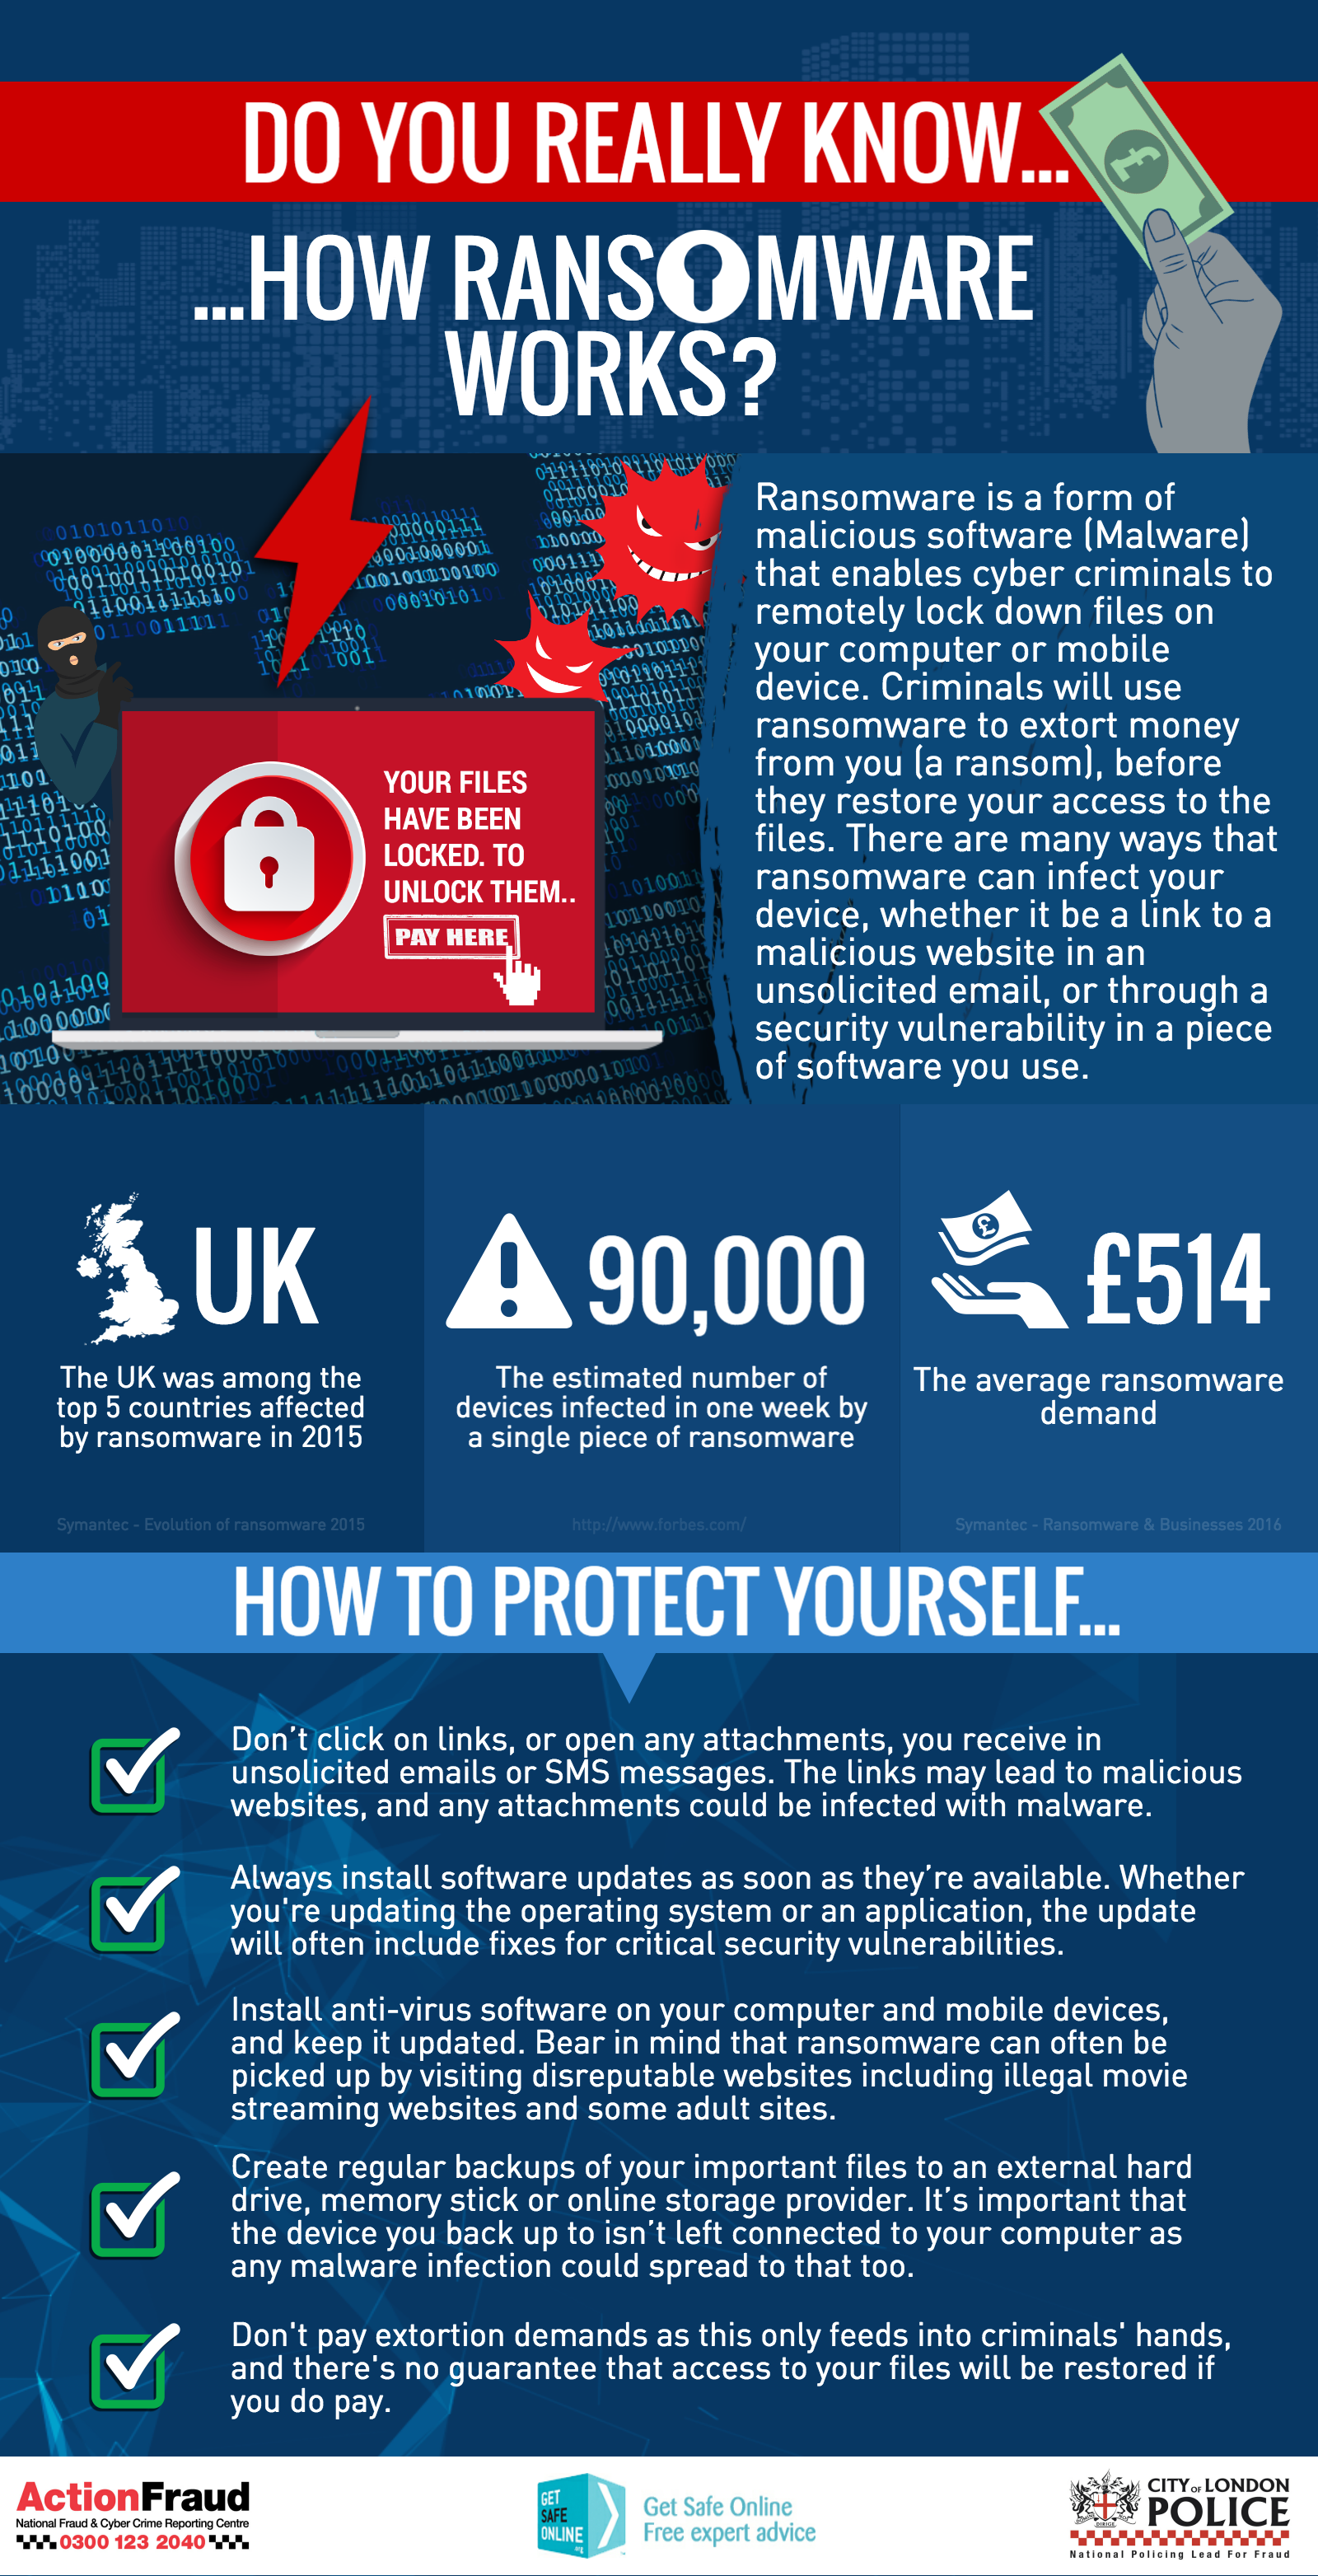 Do you really know how Ransomware works?